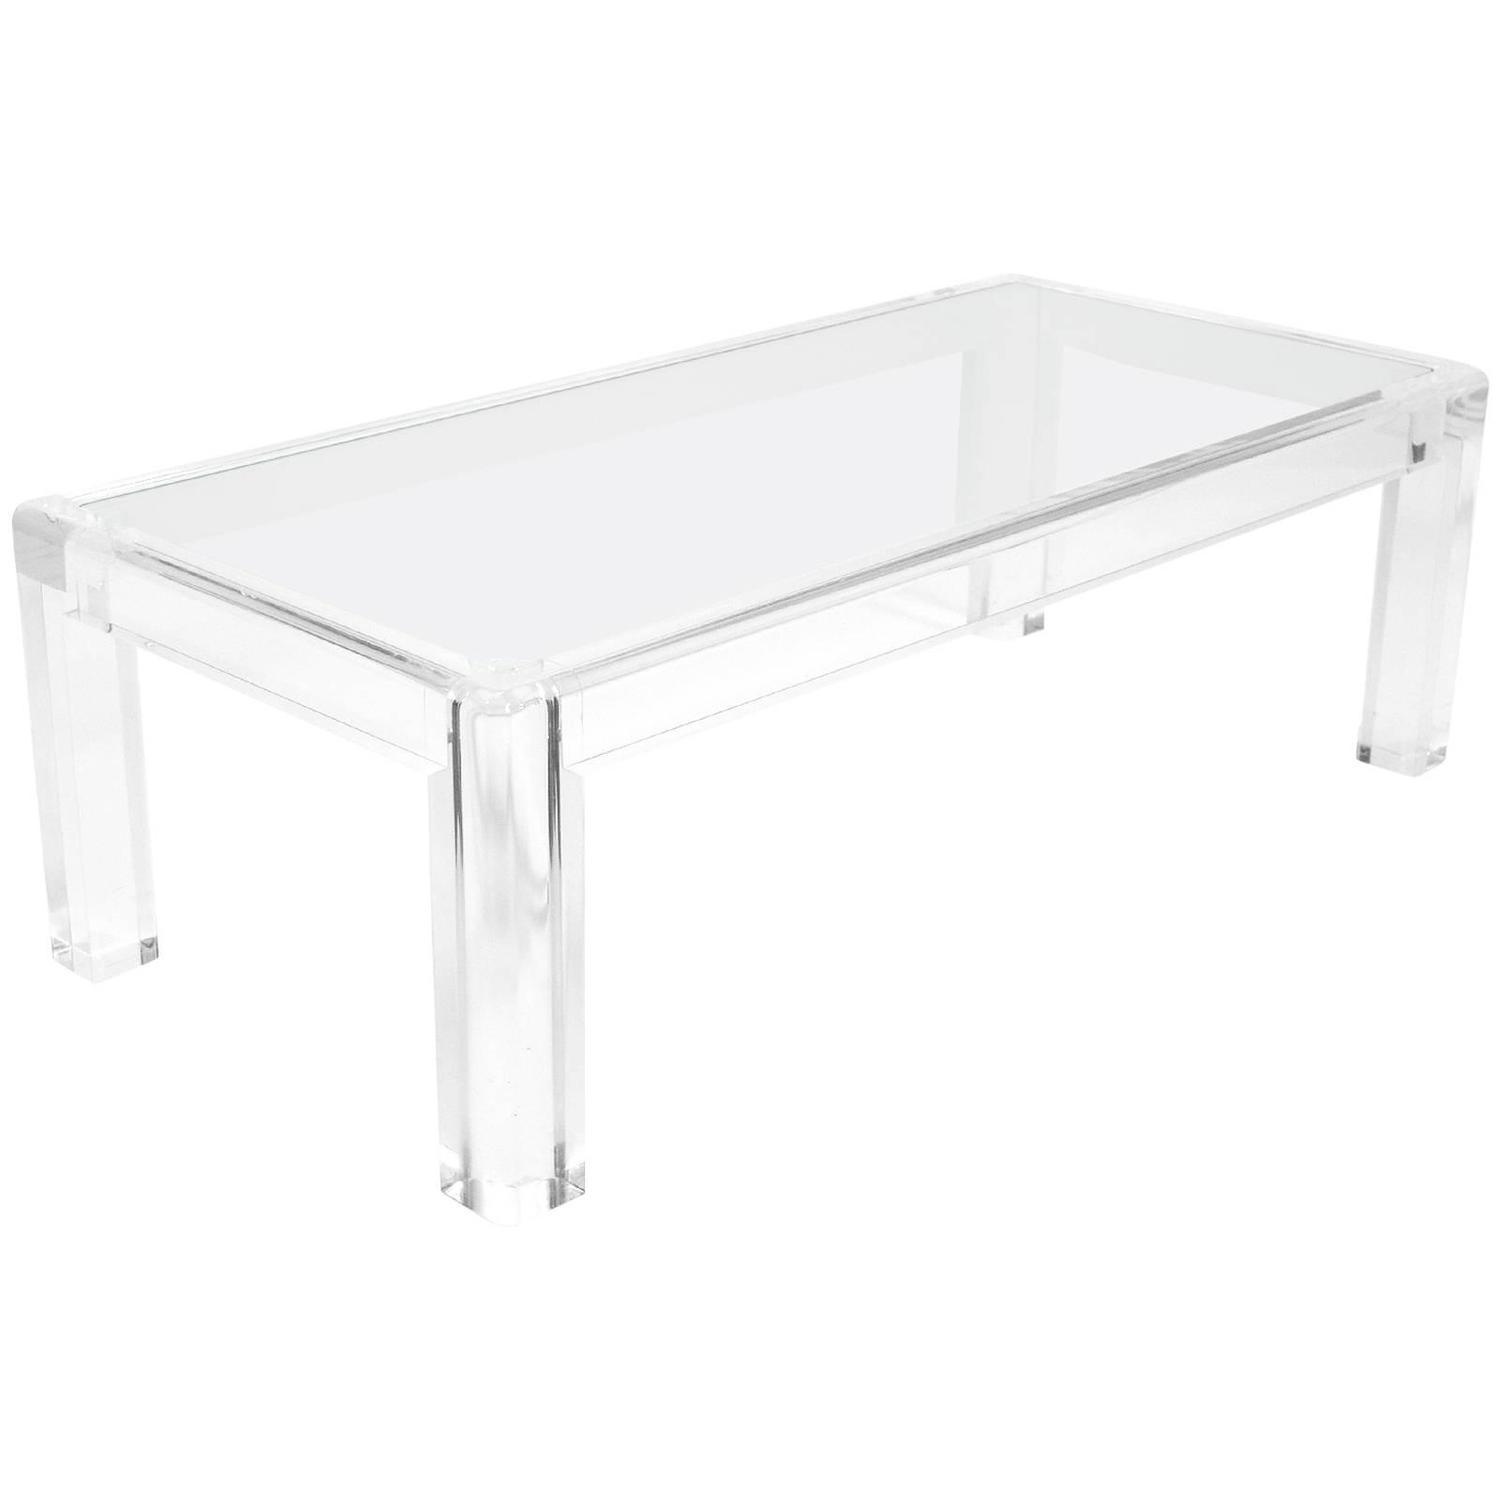 Elegant lucite and glass coffee table for sale at 1stdibs for Acrylic coffee tables for sale